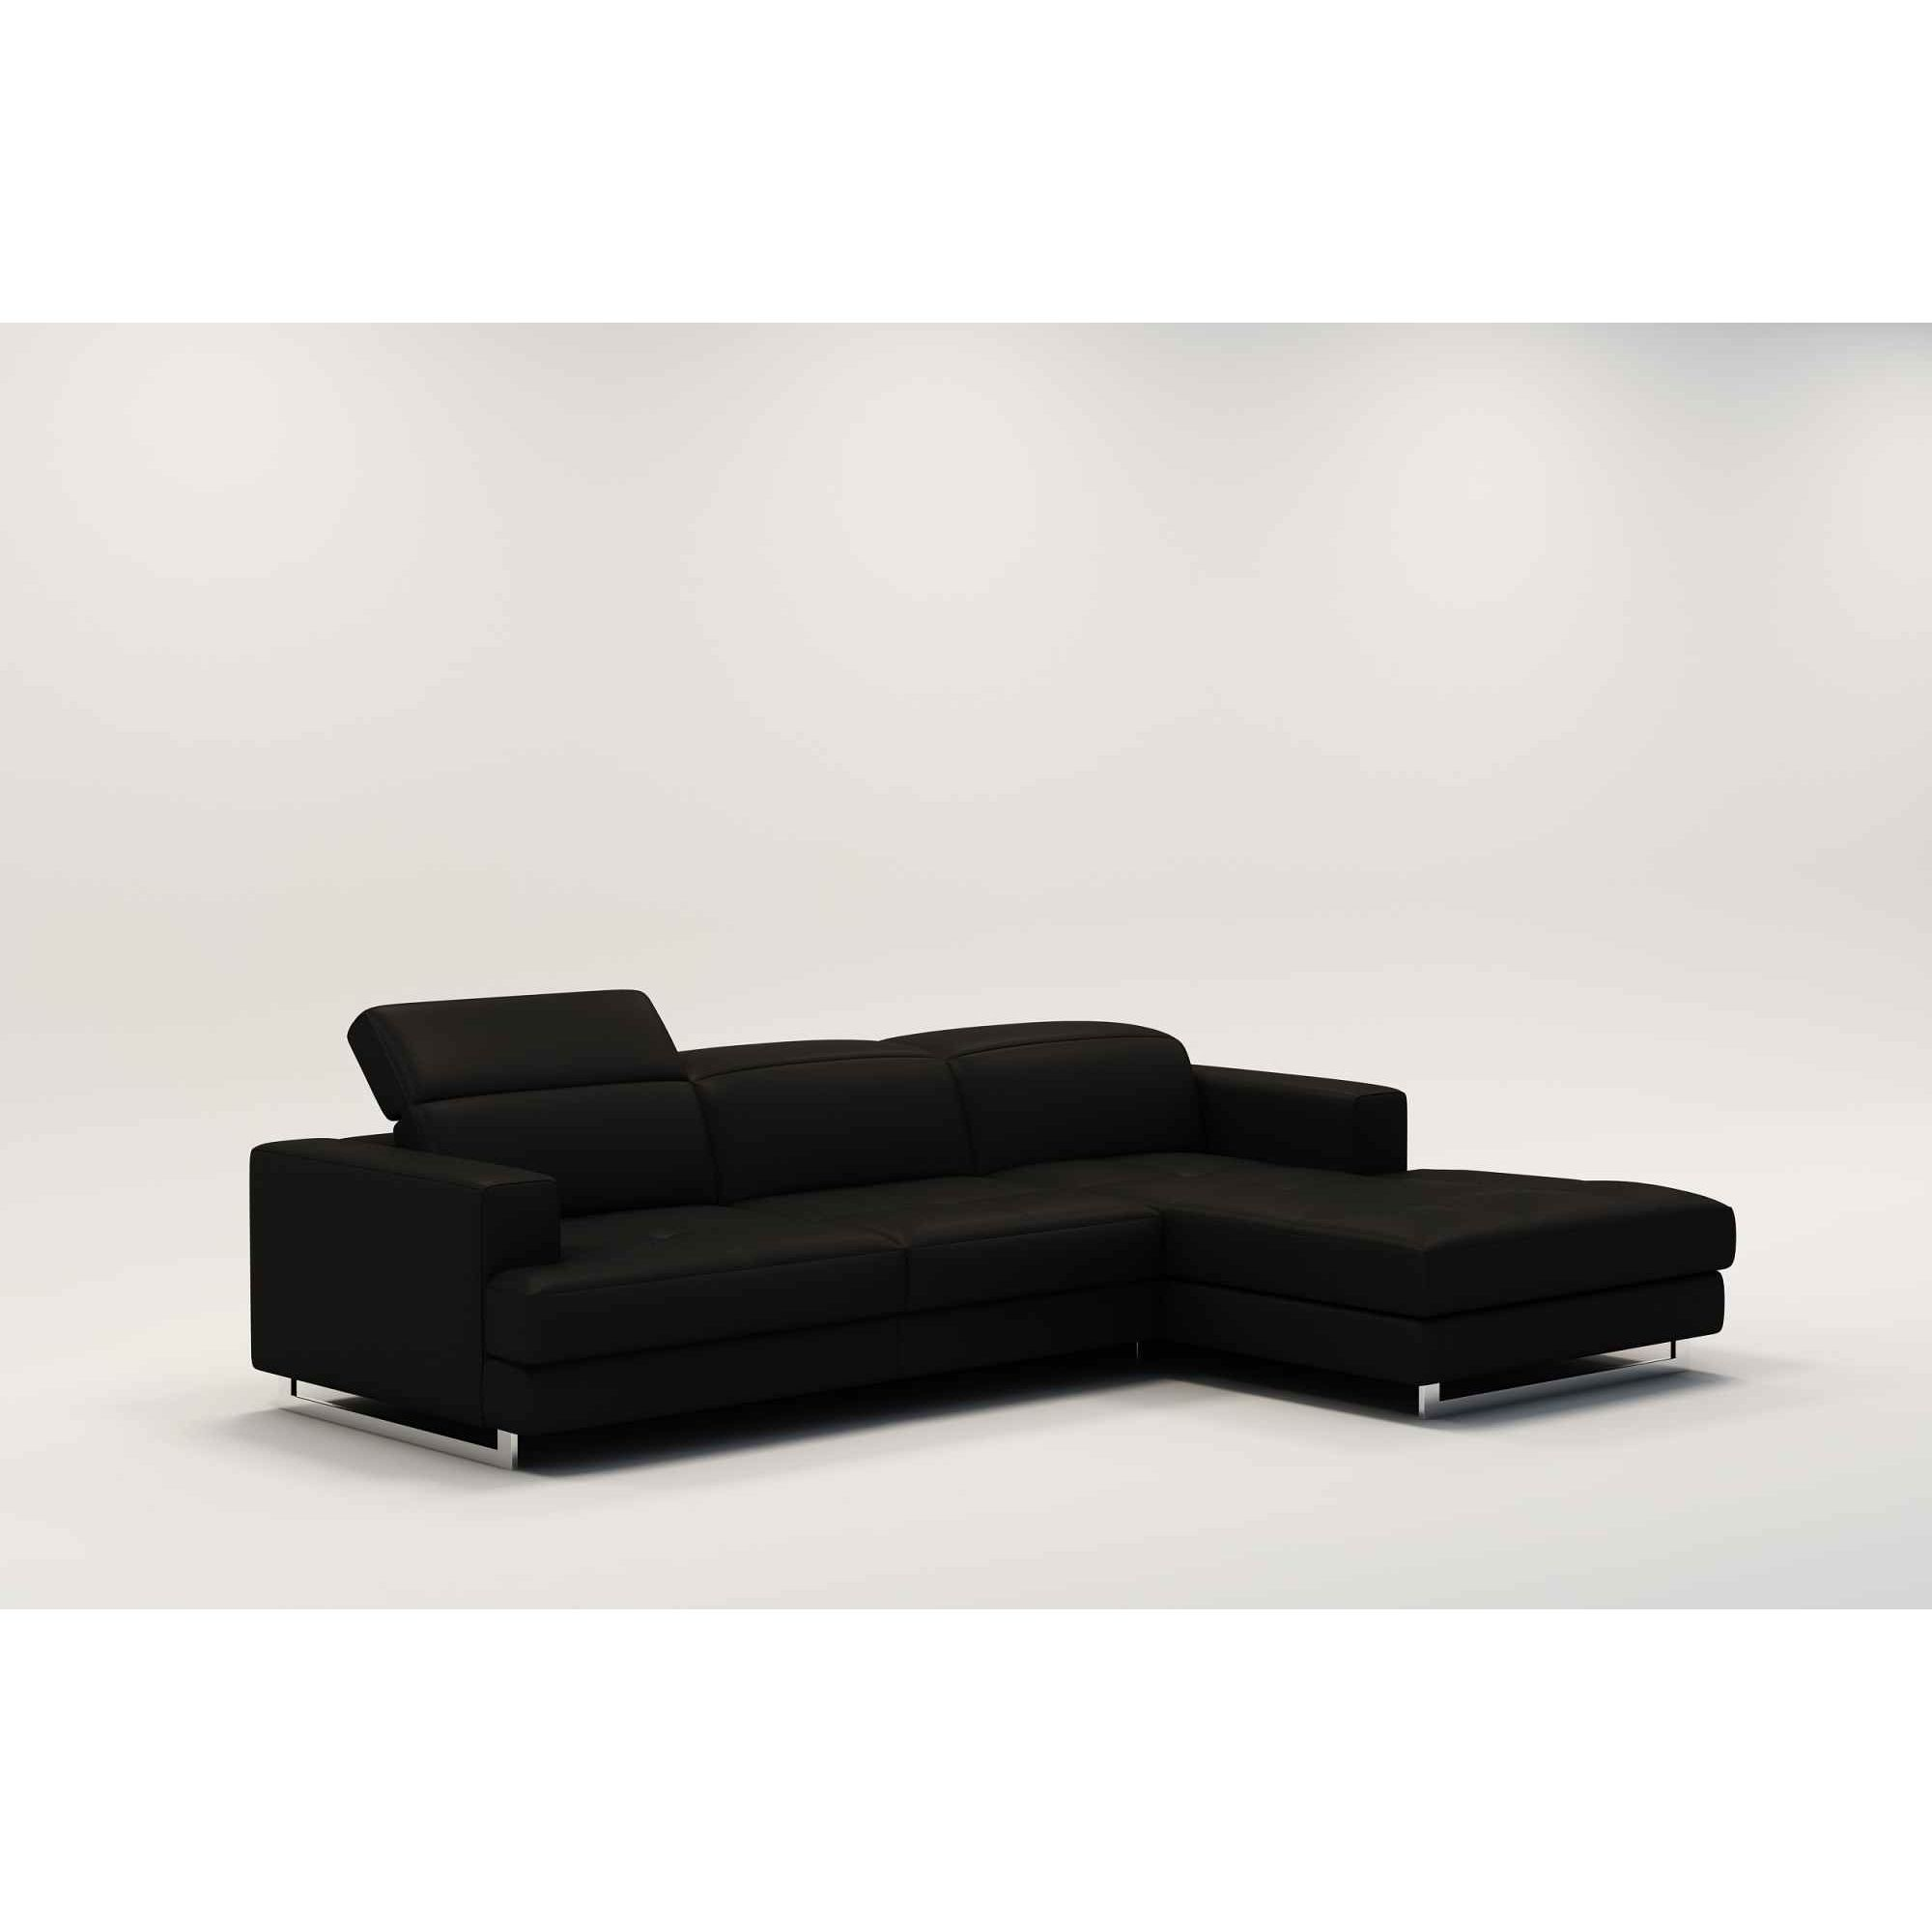 Deco in paris canape d angle design en cuir noir cris for Canape cuir noir design